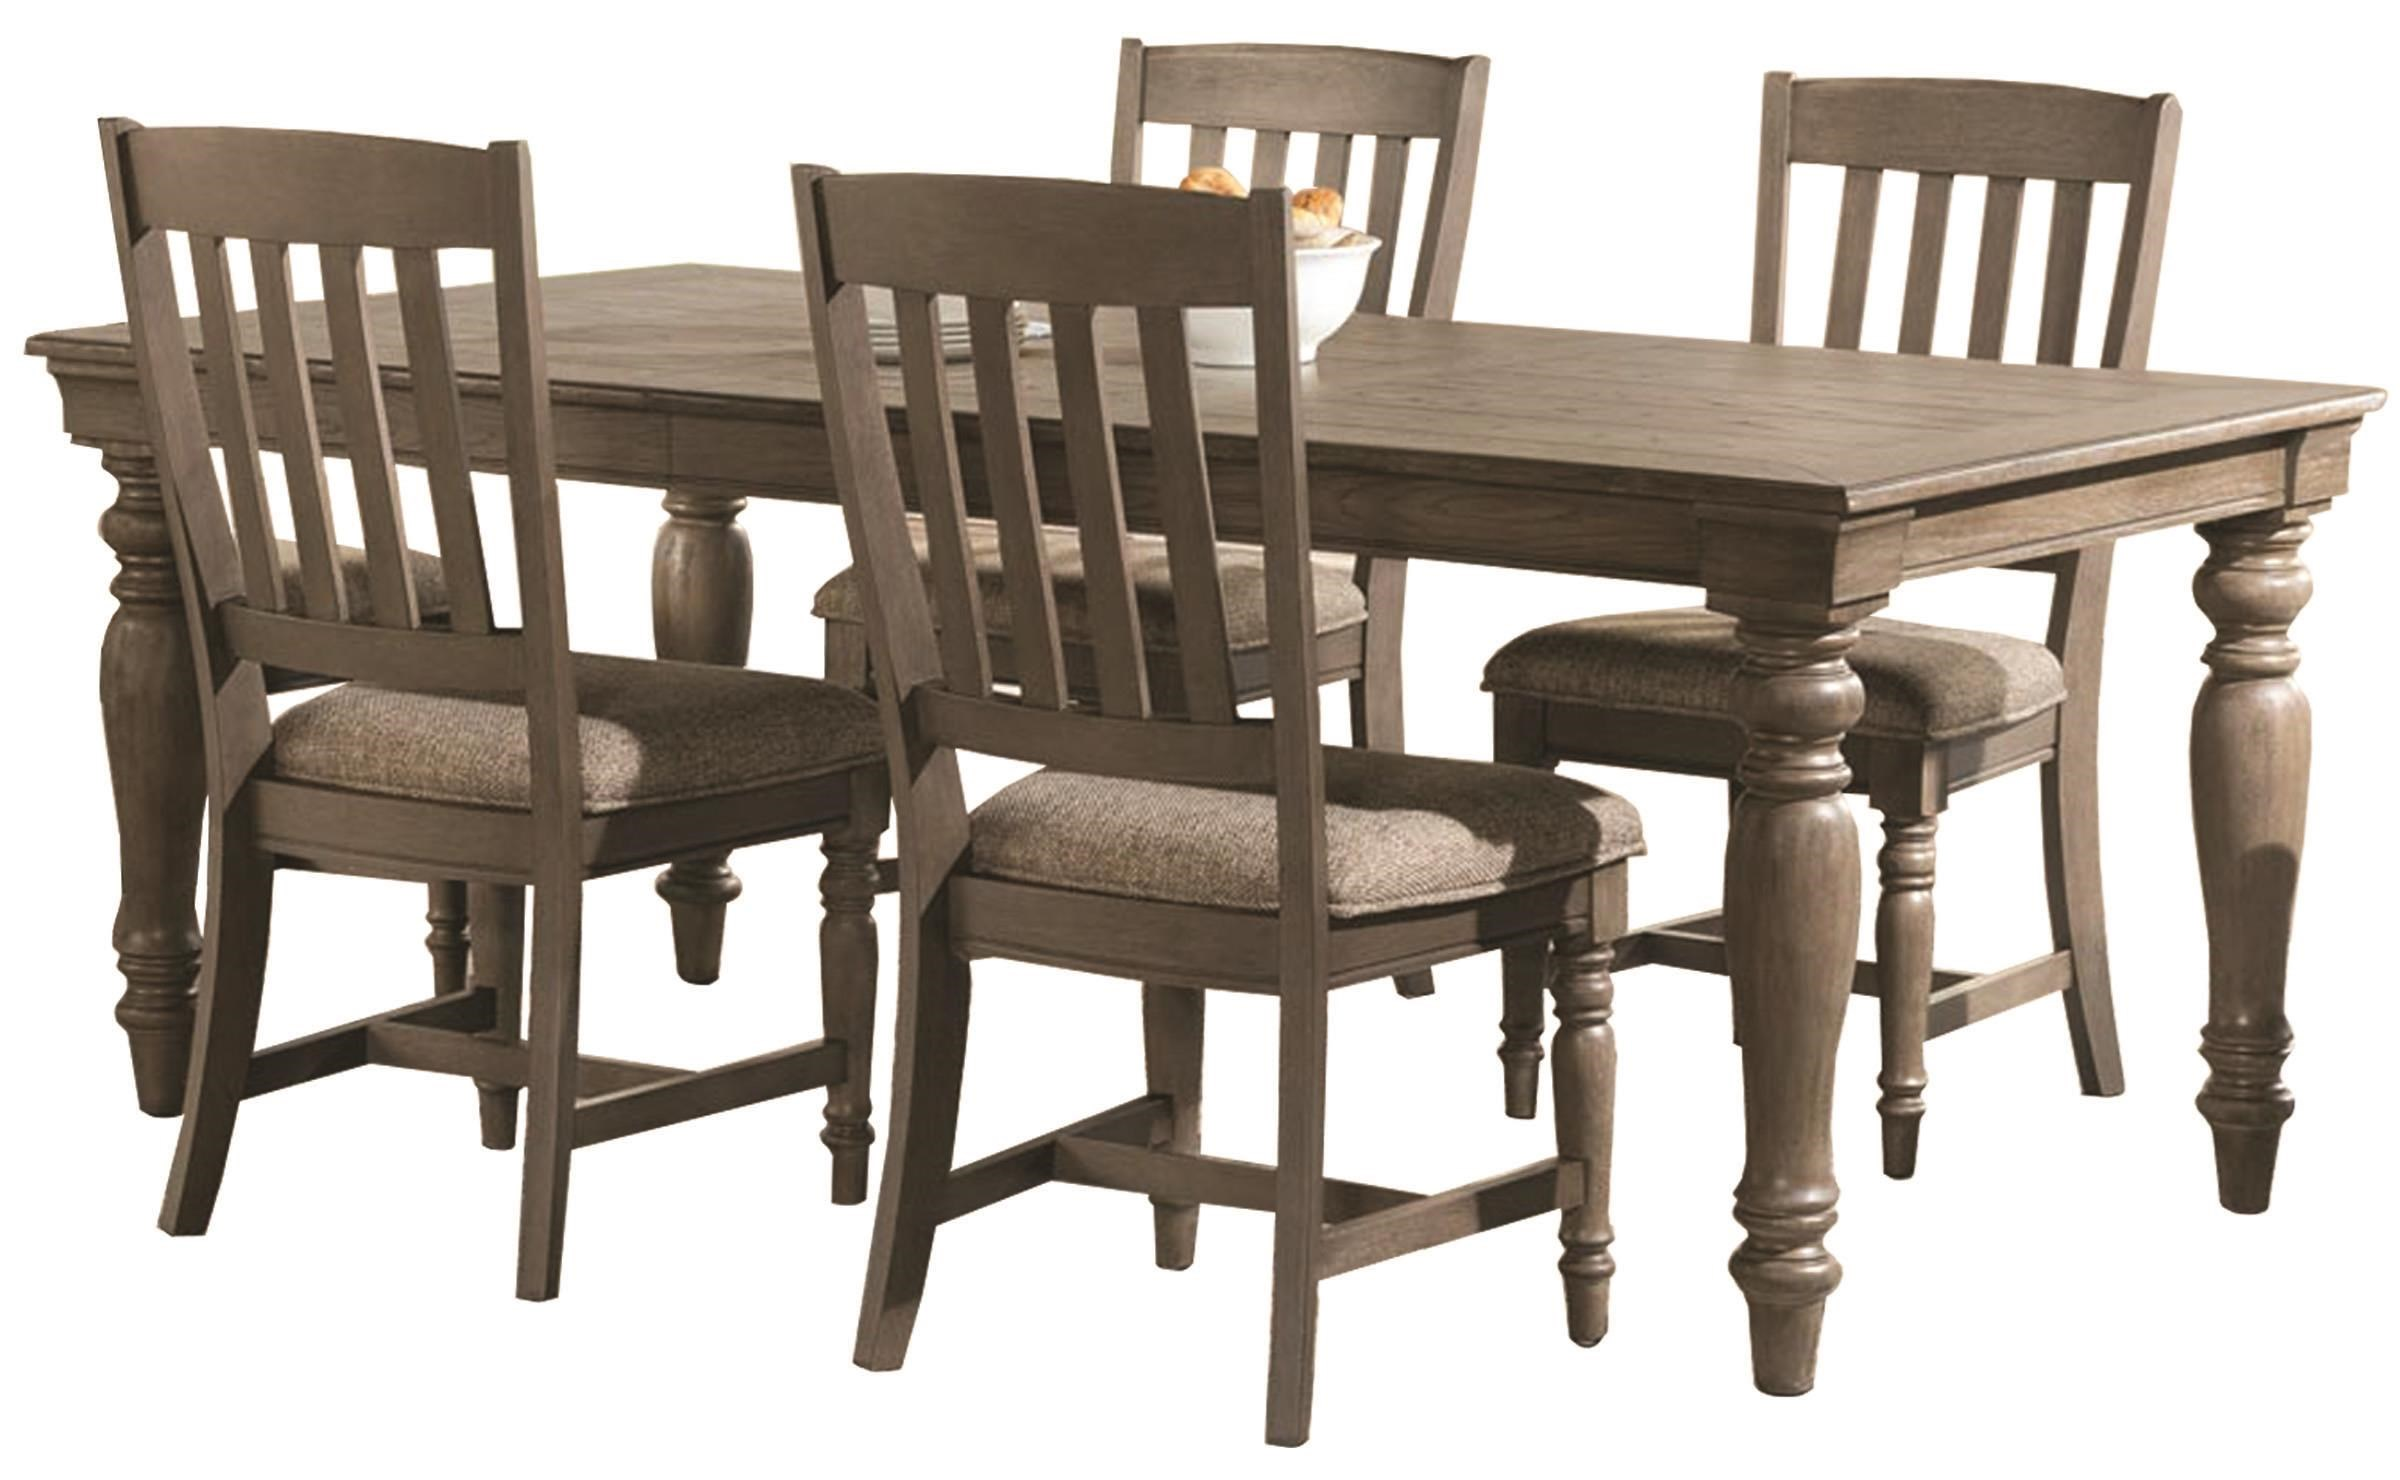 5 Piece Table and Chair Set at Sadler's Home Furnishings